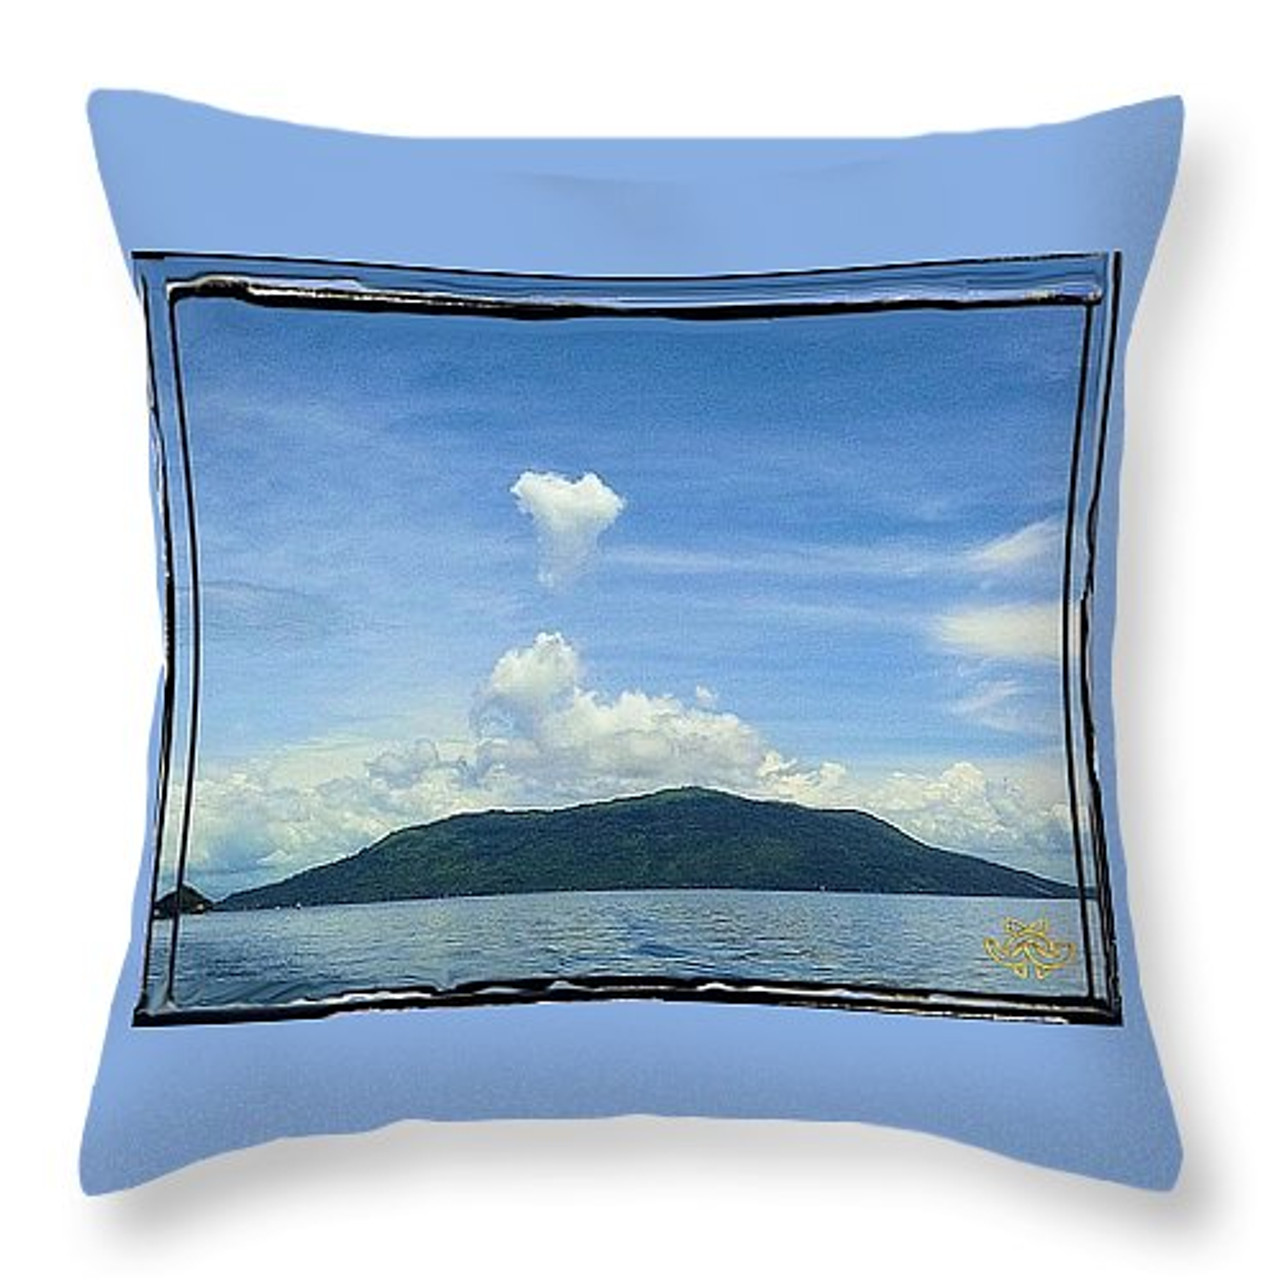 Throw pillow:  To purchase, contact me or play with the interactive site yourself: http://fineartamerica.com/profiles/jane-a-gordon.html